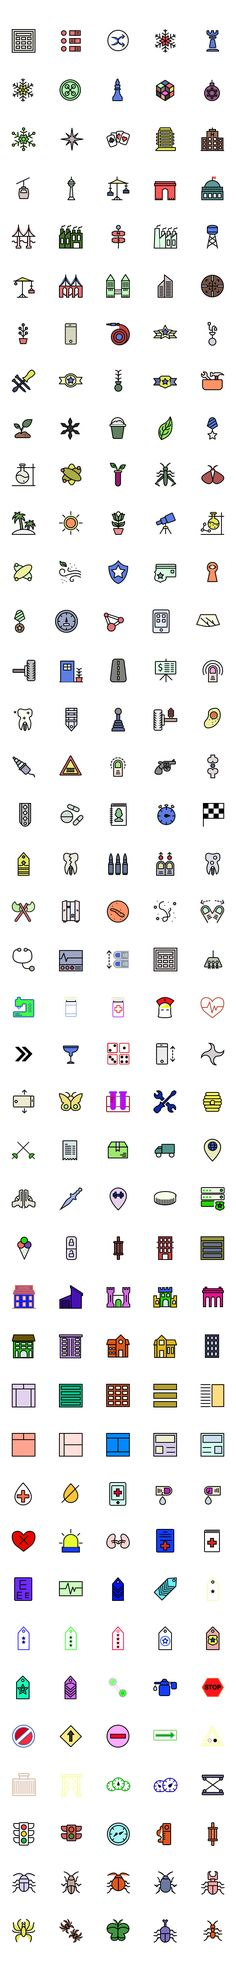 Take a look at this large collection of 200 colored free icons. They're optimized for iOS, are pixel perfect and cover multiple categories so you can use them in a wide range of next projects. Check them out and add these free icons to your library for free!